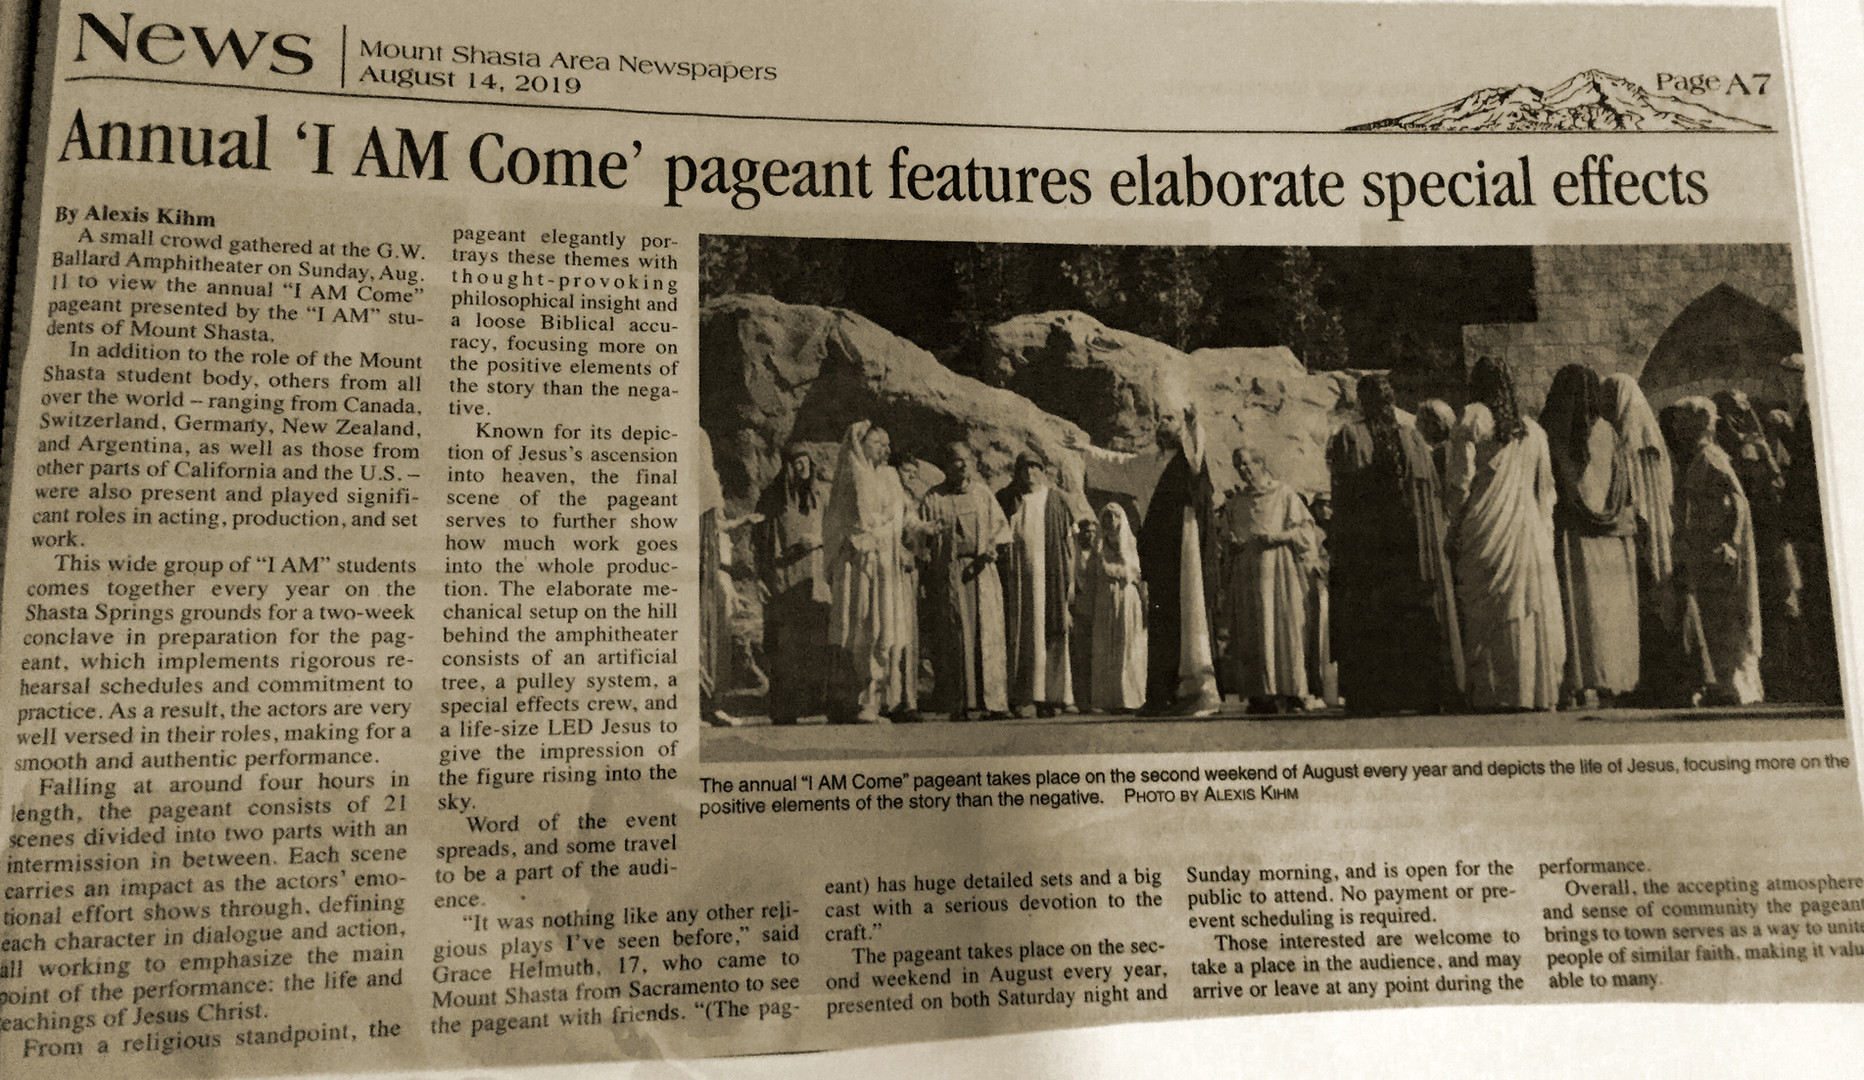 Annual 'I AM Come' pageant features elaborate special effects